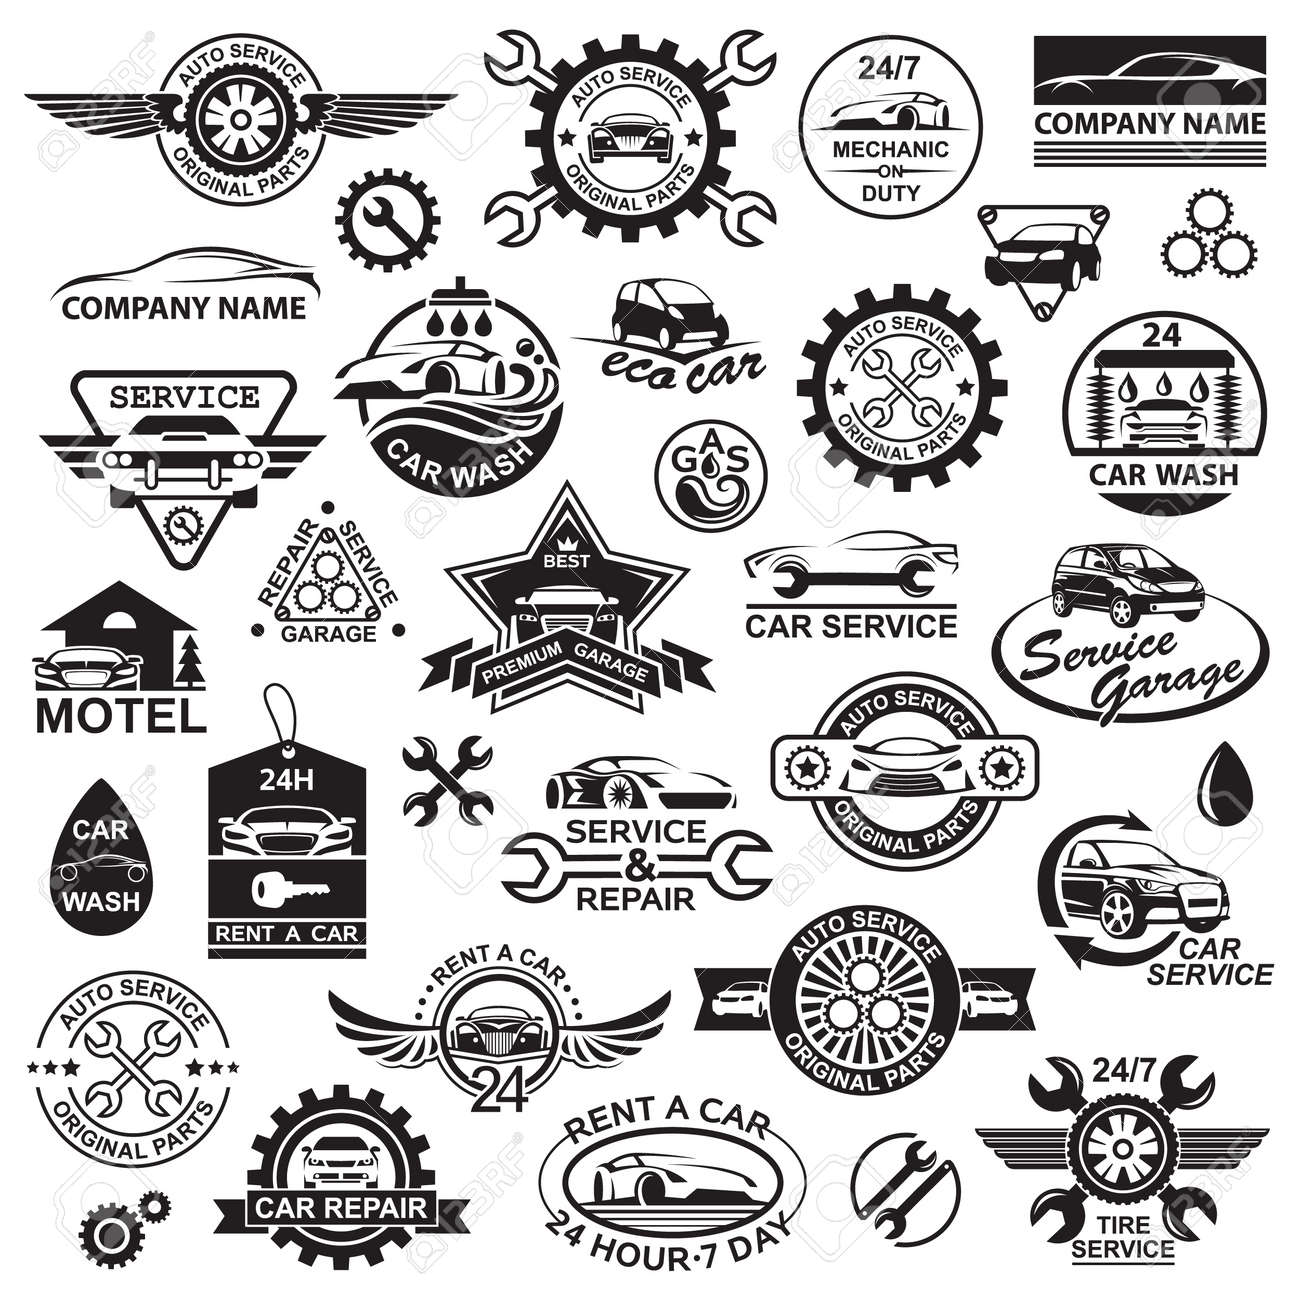 monochrome illustration of various car icons - 51561761